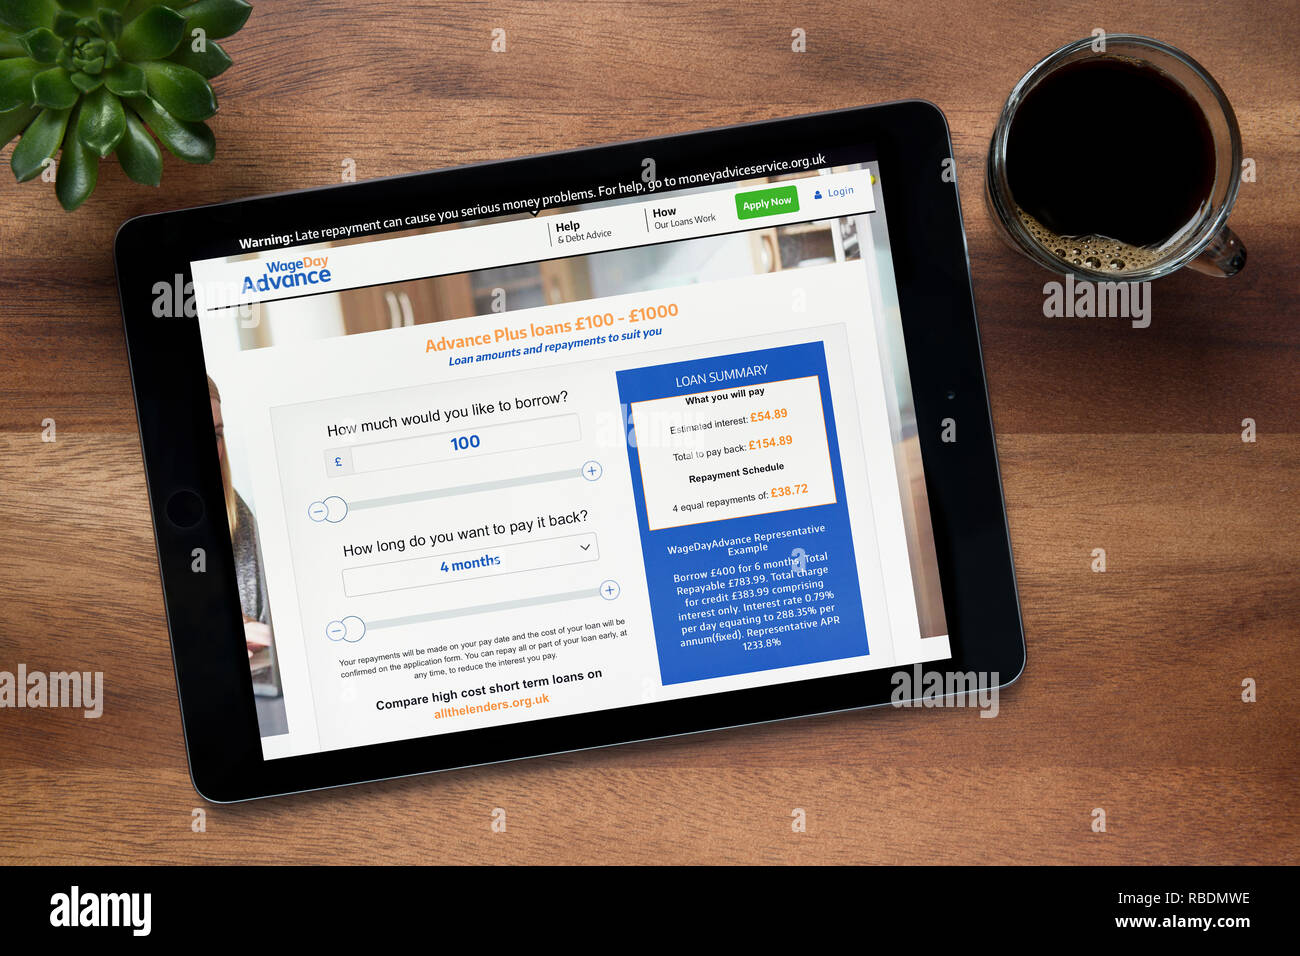 The website of Wage Day Advance is seen on an iPad tablet, on a wooden table along with an espresso coffee and a house plant (Editorial use only). - Stock Image